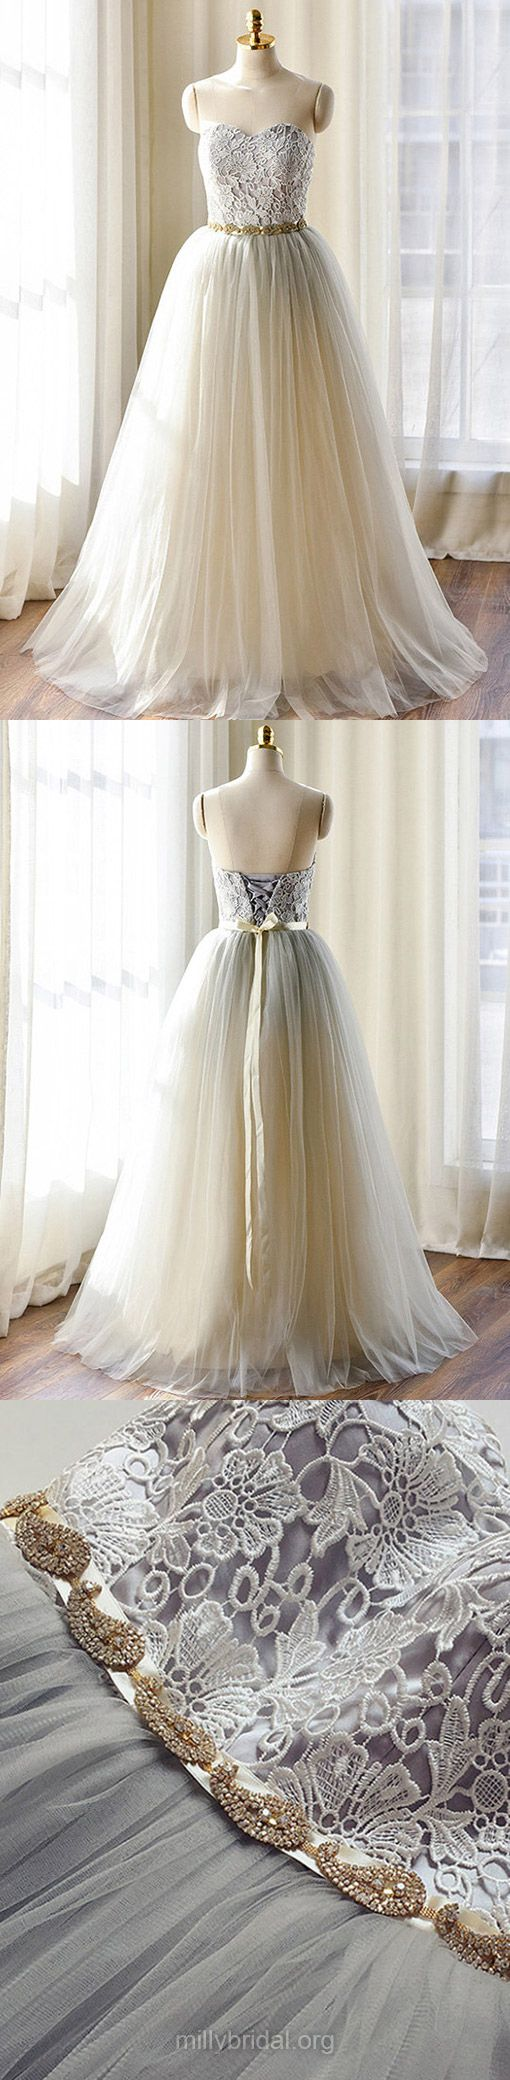 Sweetheart Wedding Dresses Modest, Tulle Bridal Gowns Affordable, 2018 Wedding Dress Unique